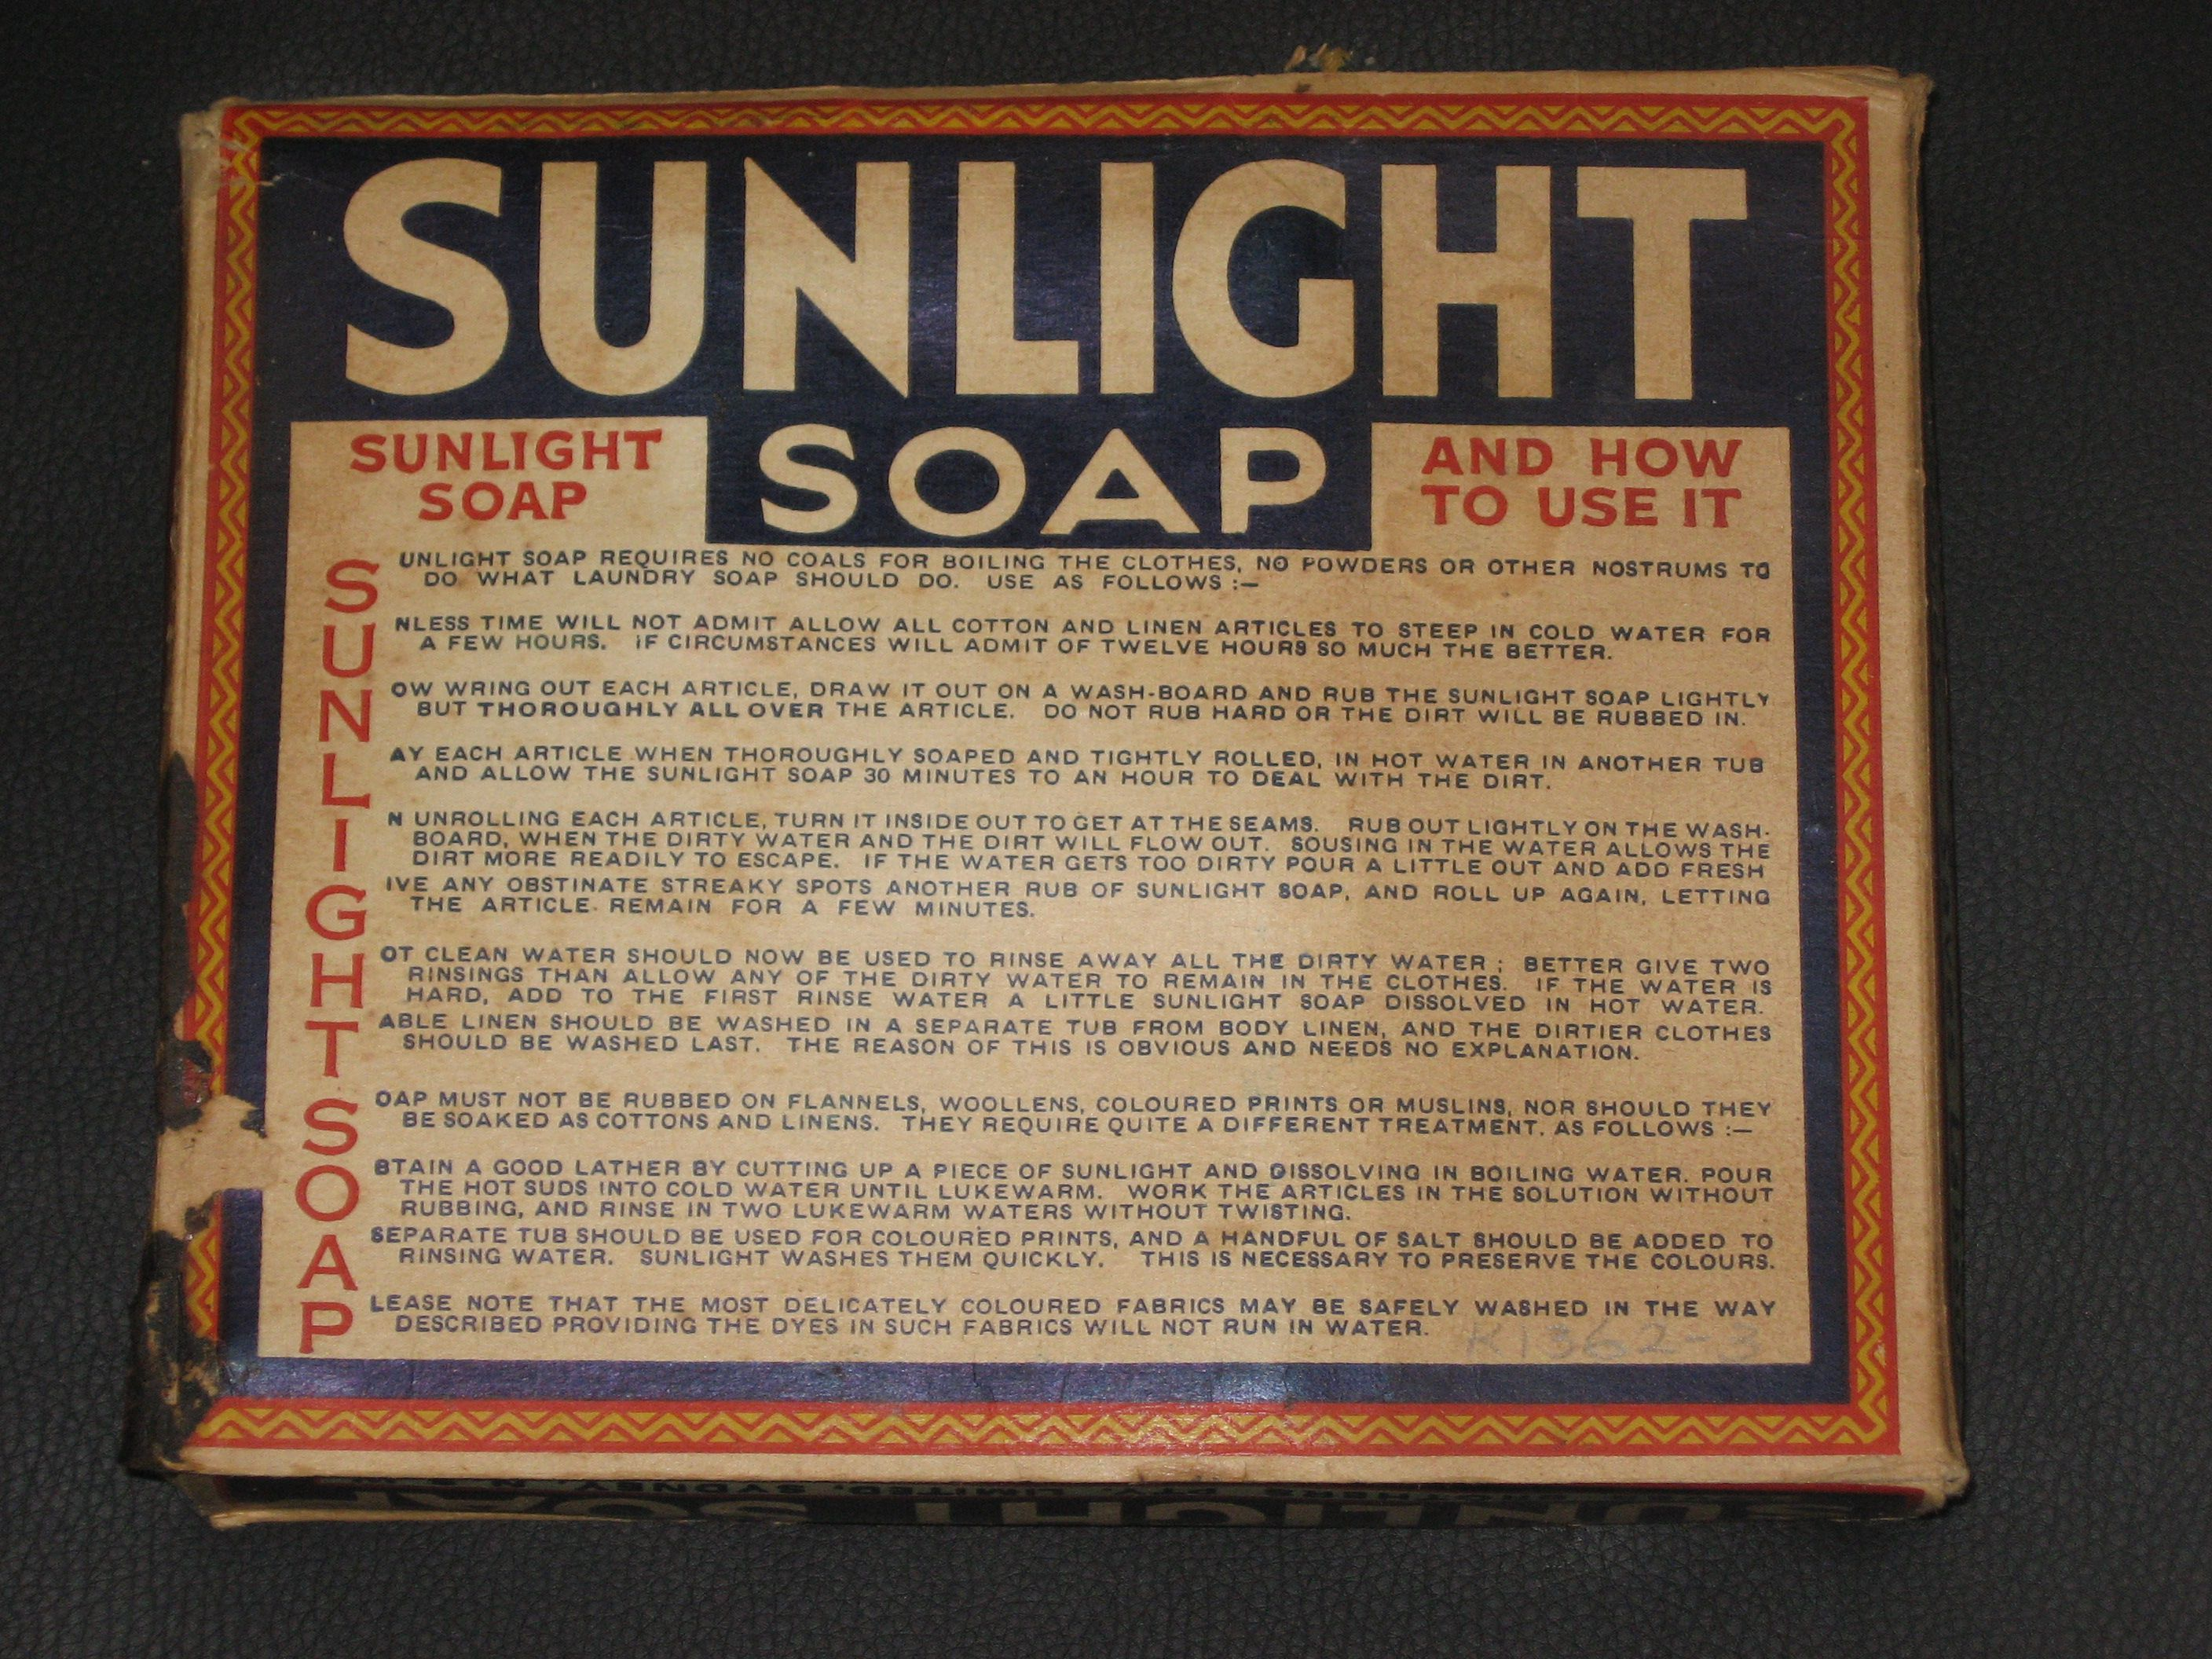 Packaged soap (4), 'Sunlight', paper / soap, made by Lever Brothers